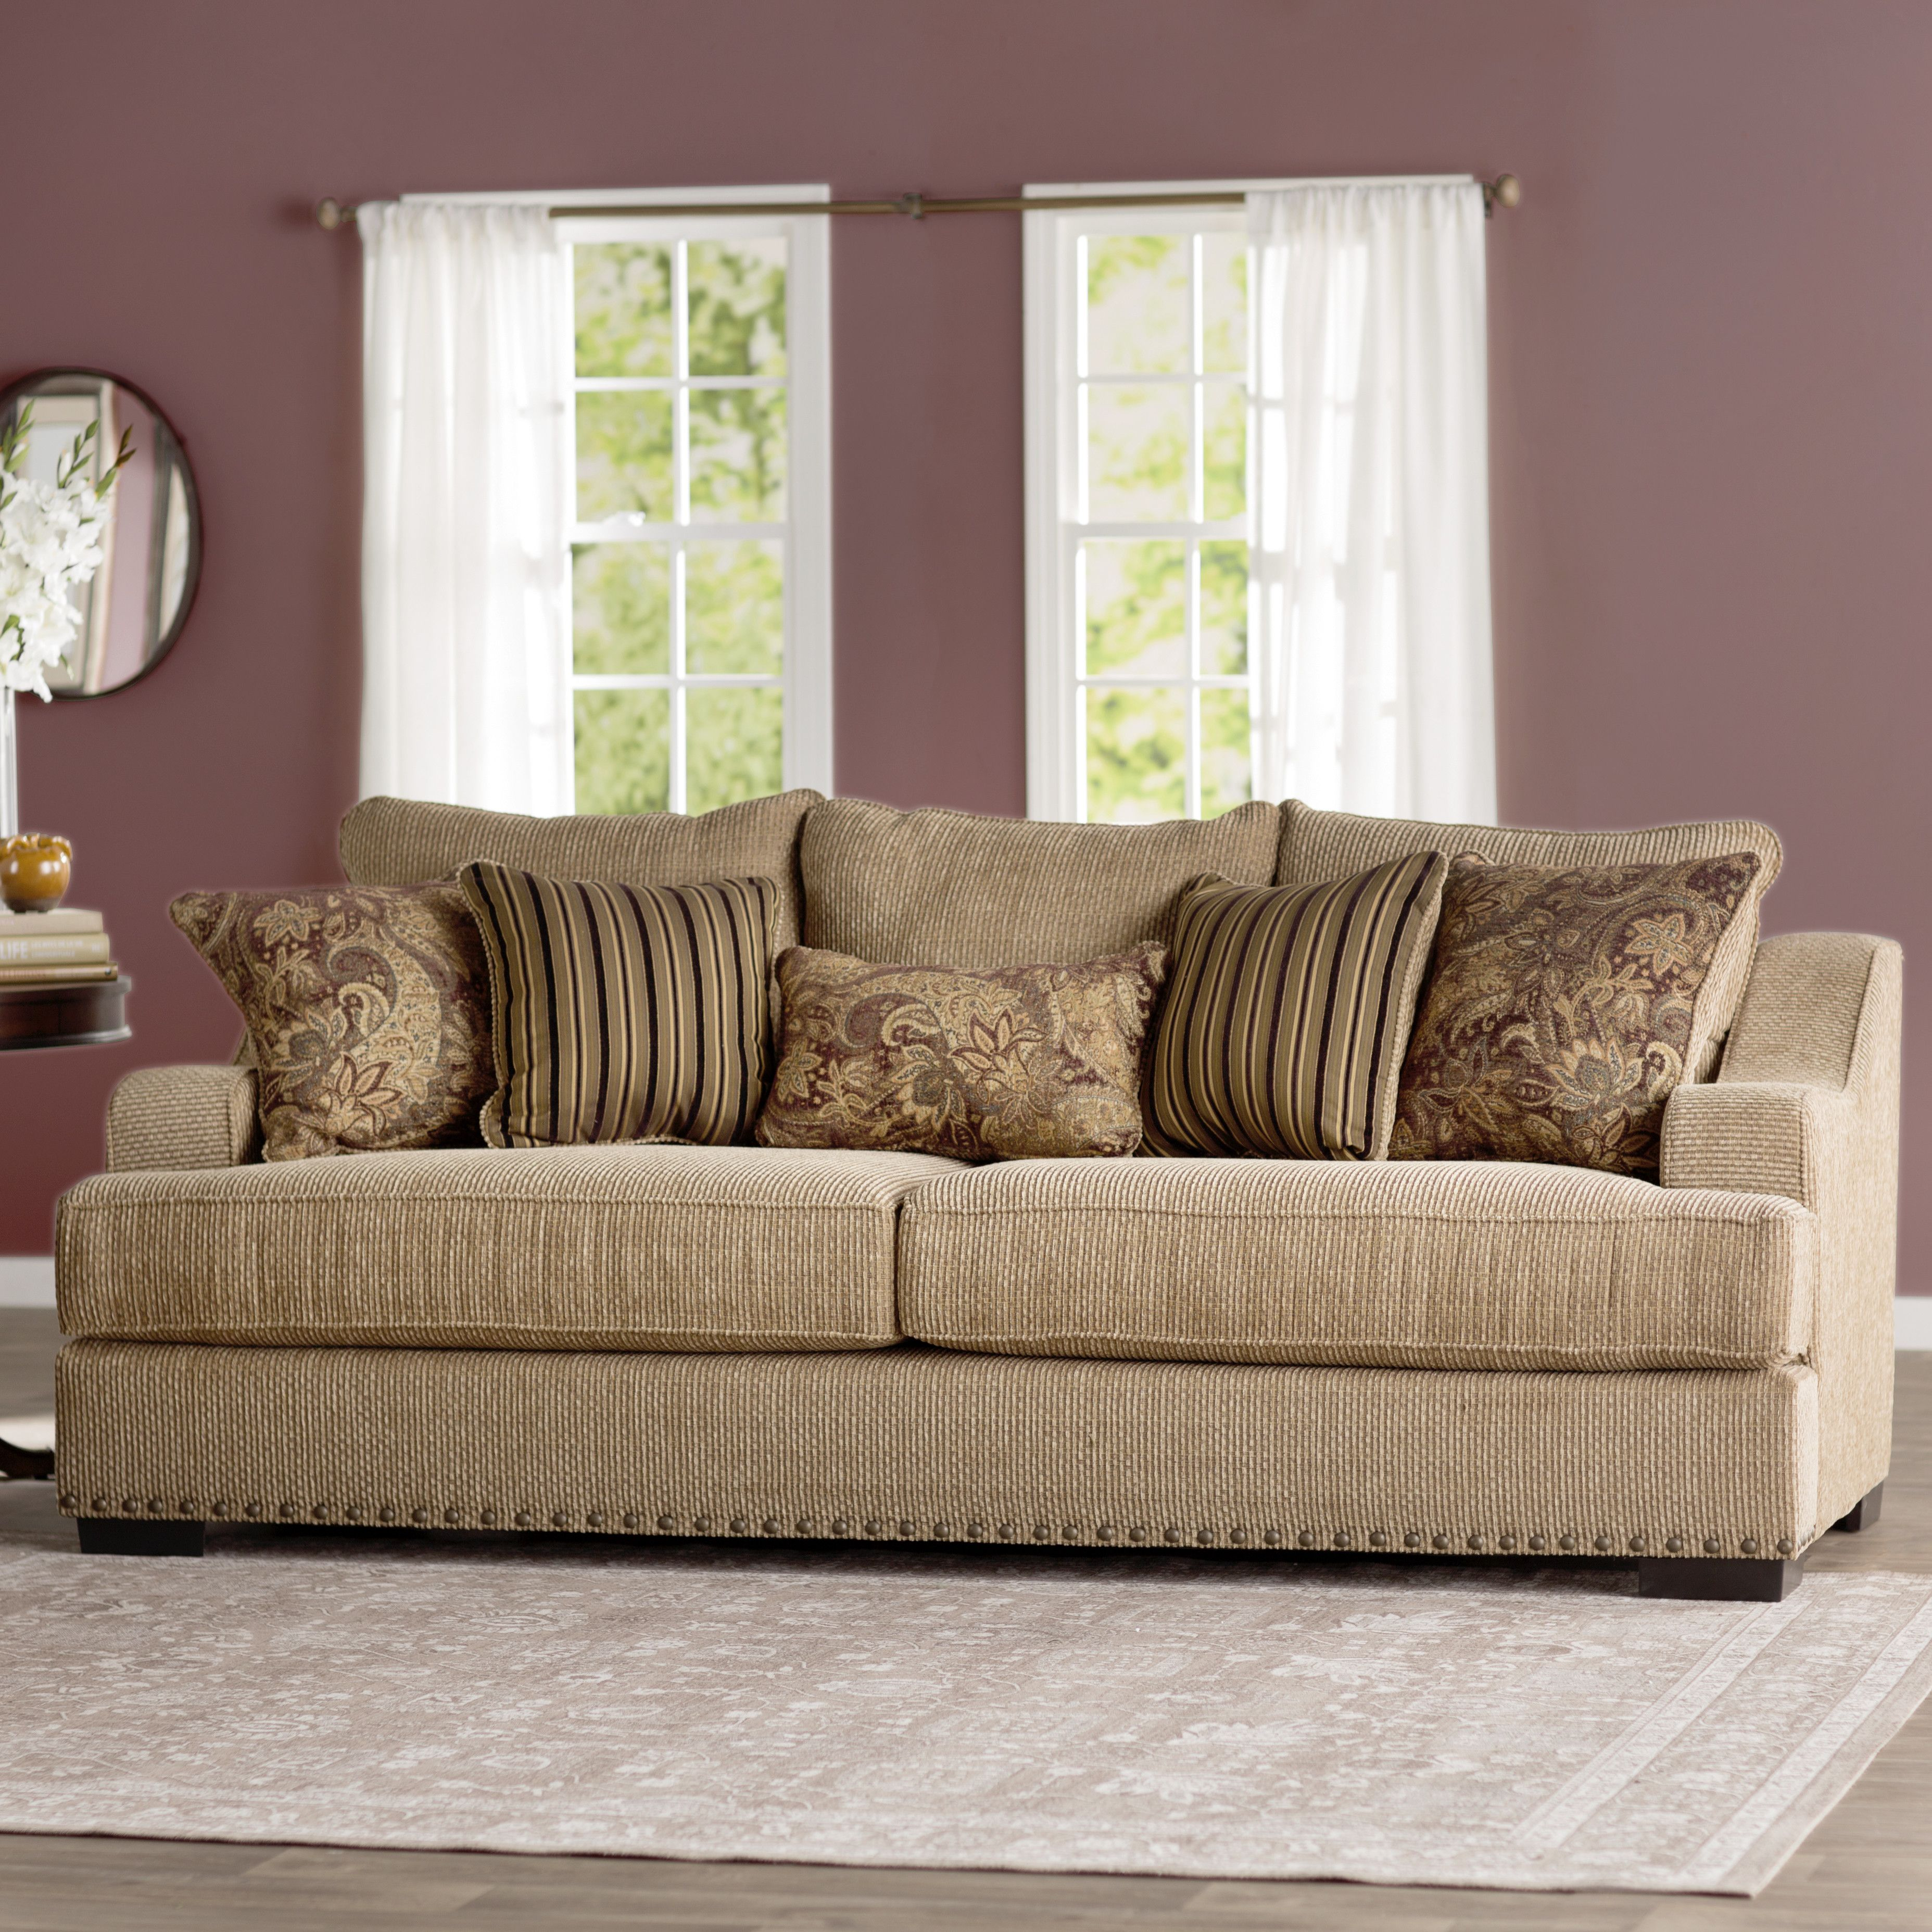 Darby Home Co Dunning Sofa Home, Sofa, Modern furniture sets